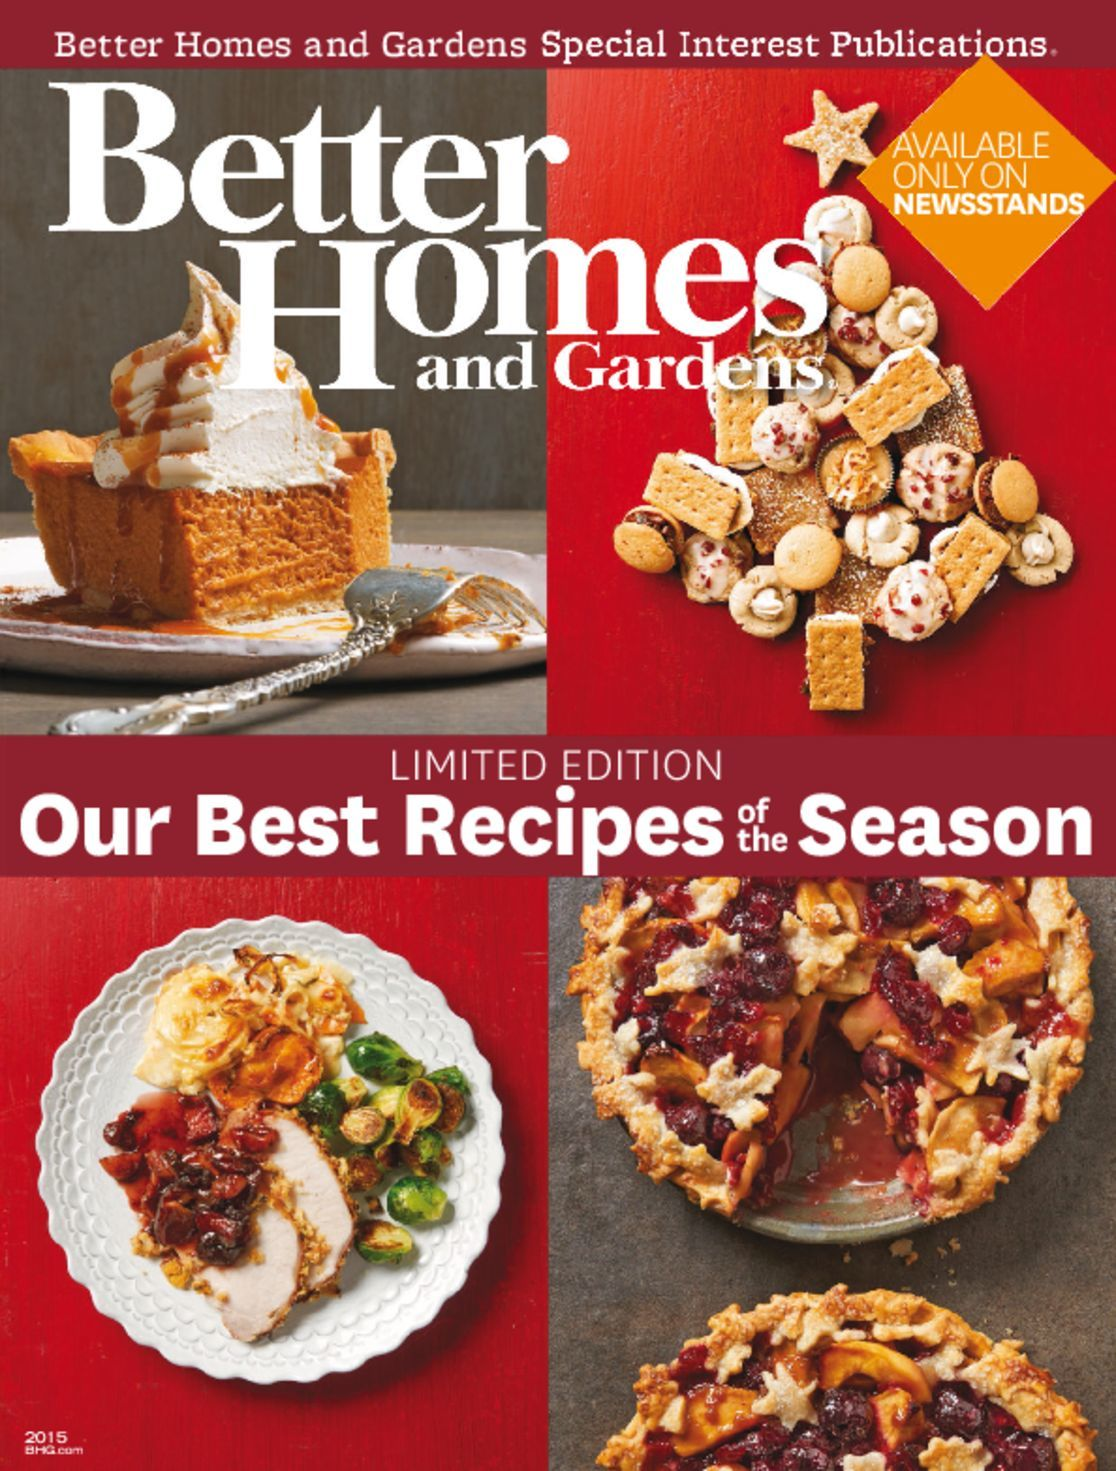 Bhg Limited Edition Our Best Recipes Of The Season